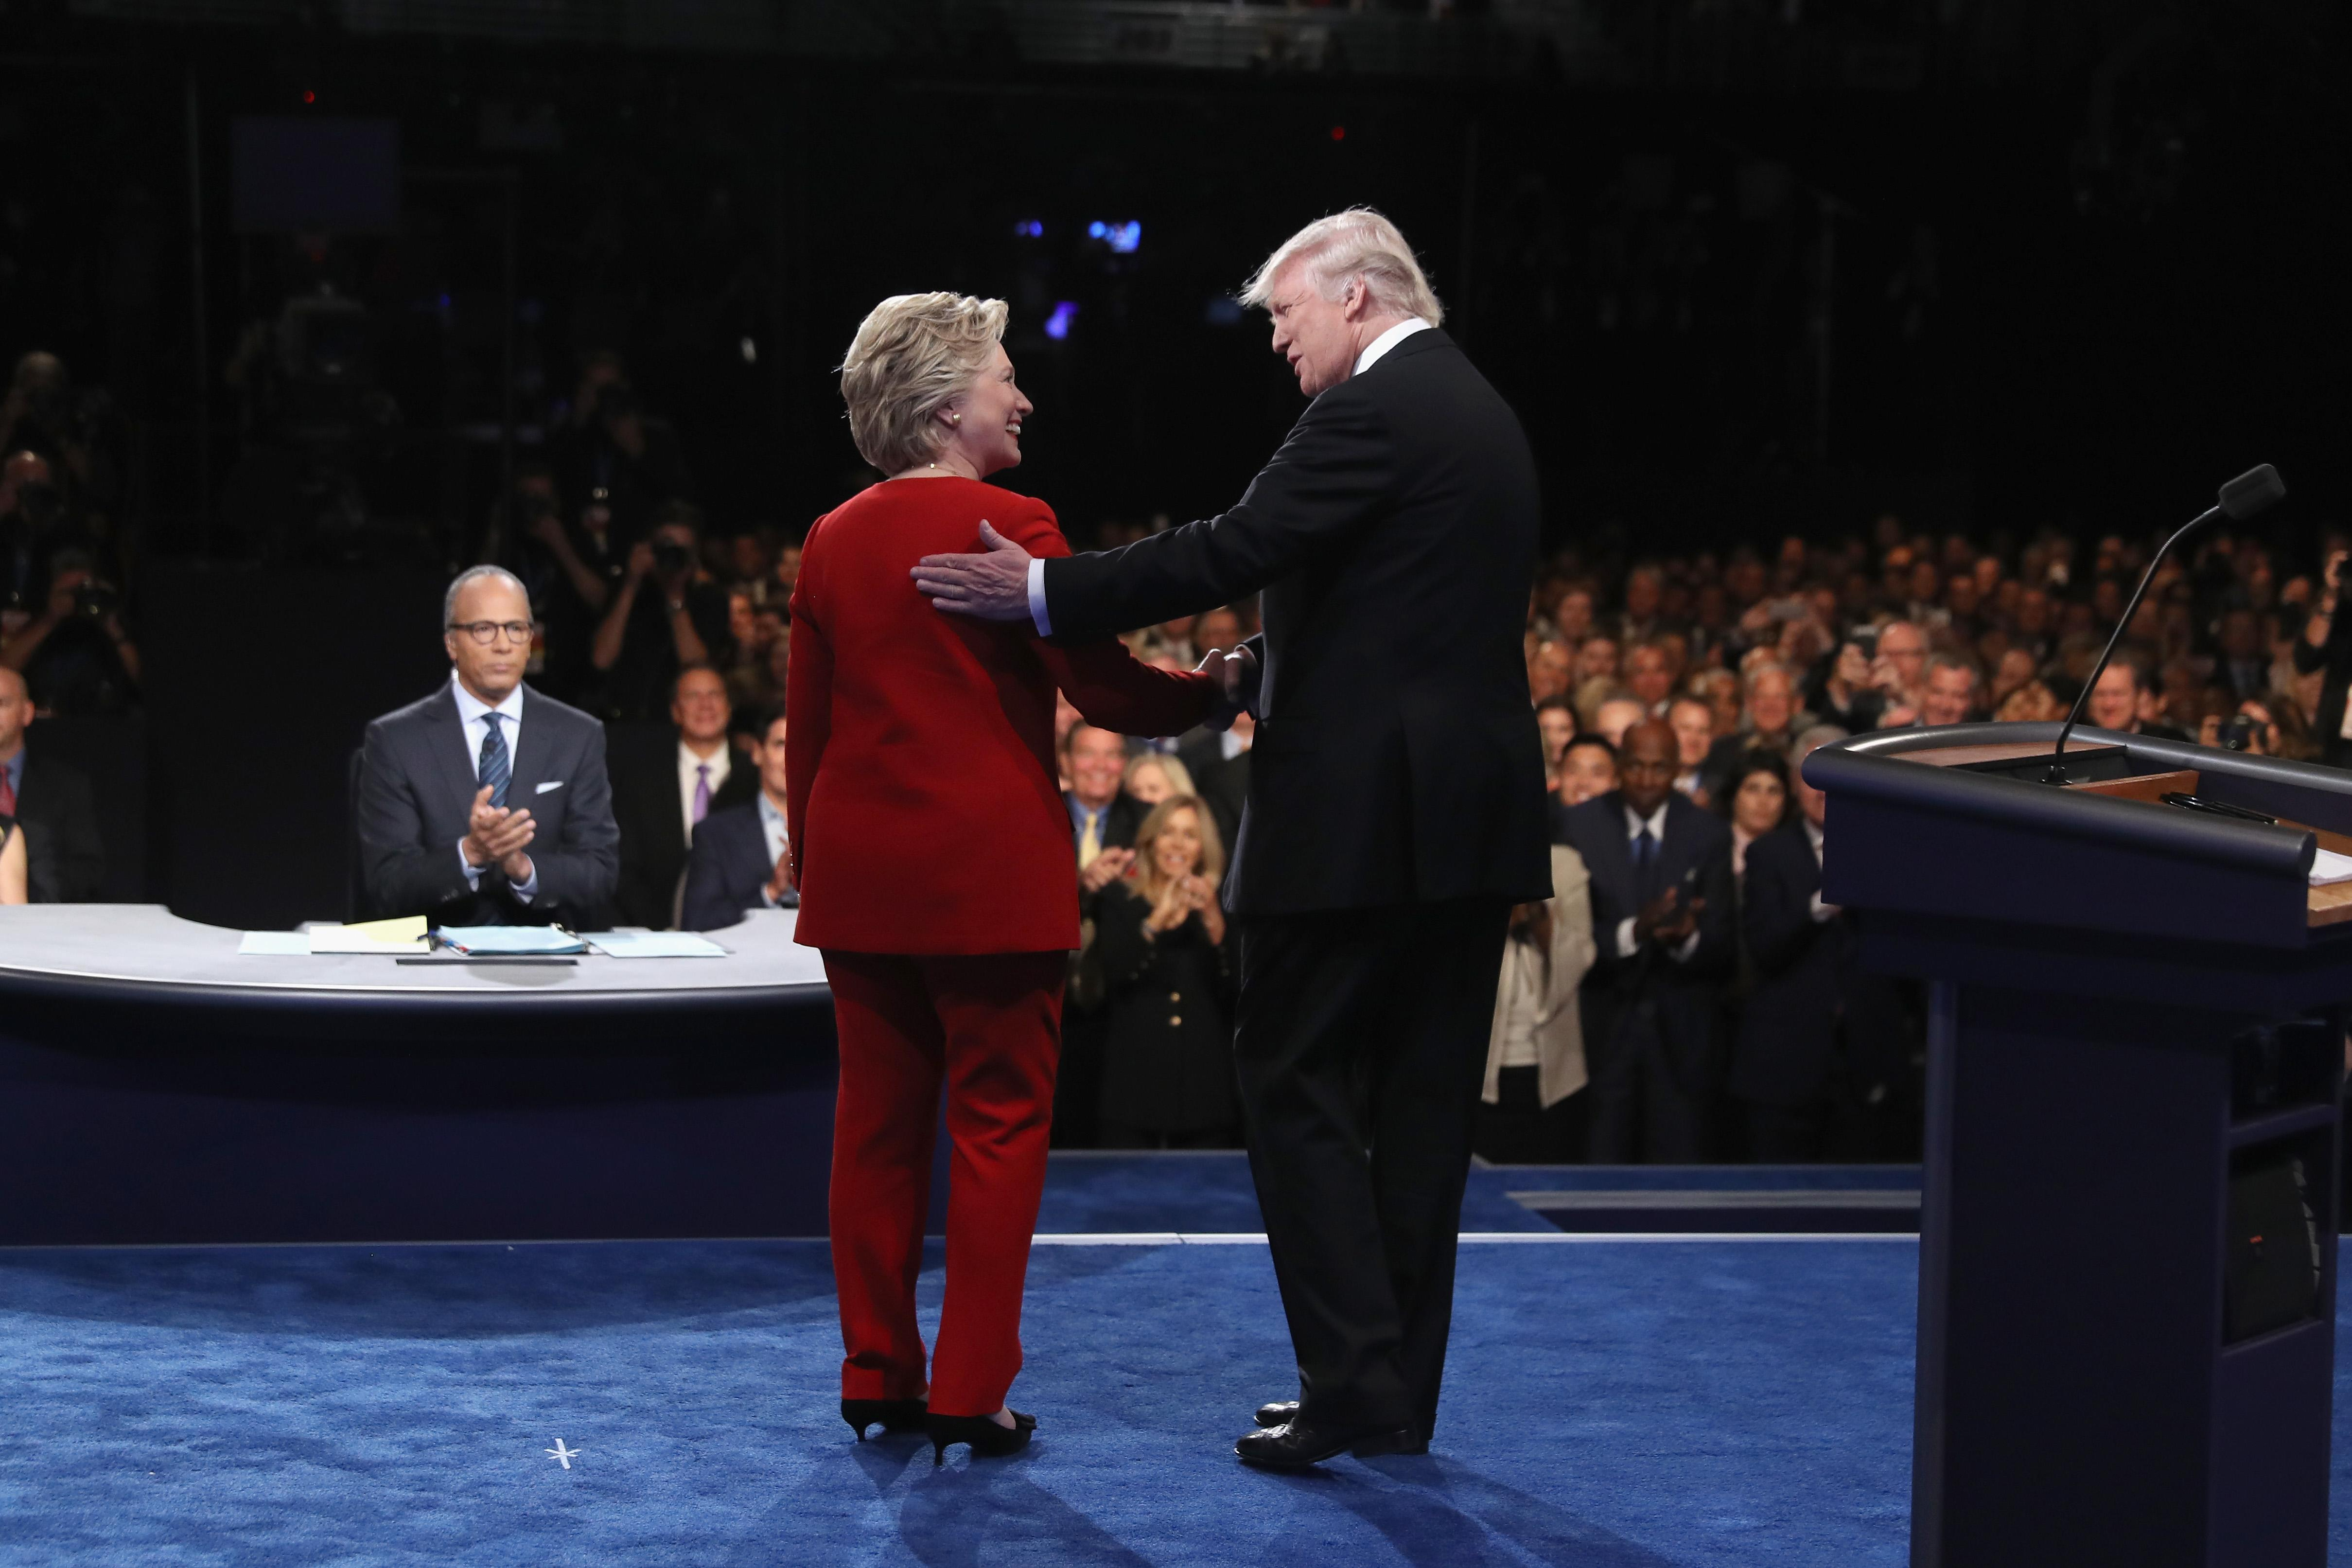 'The Best American Debate Since World War II': How the World Saw Clinton and Trump